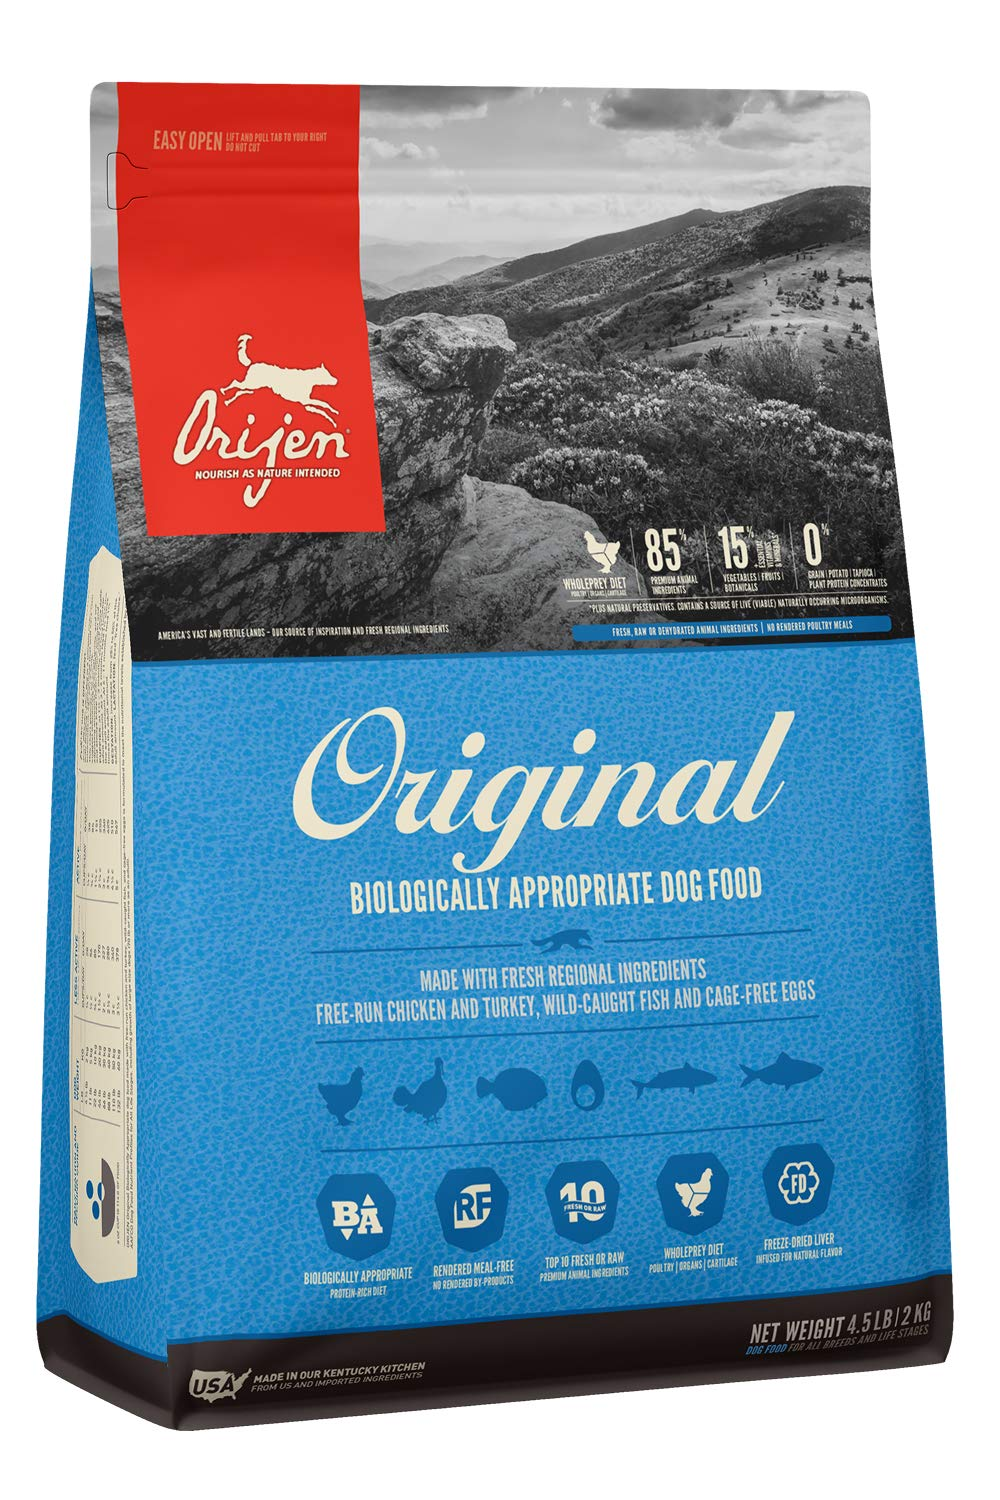 1.Orijen High-Protein Grain-Free, Premium Quality Meat, Dry Dog Food